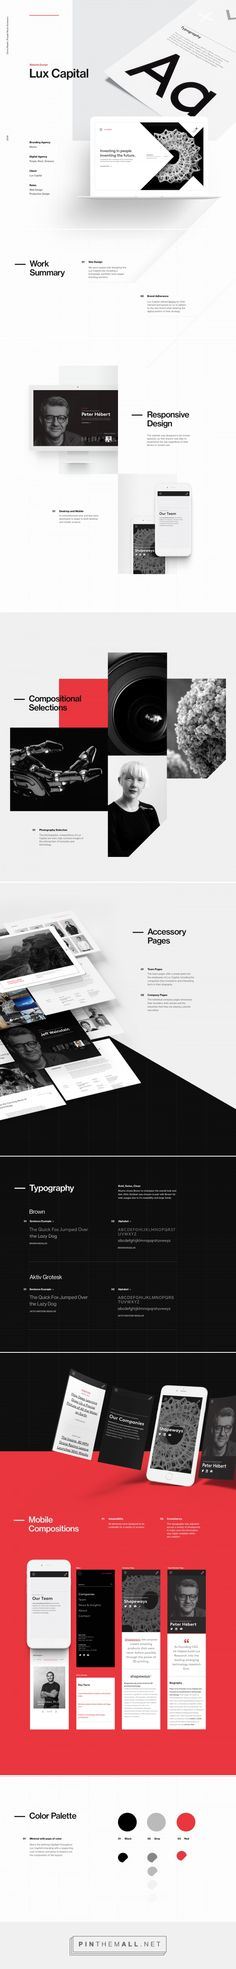 Web Design: Redesign of Lux Capital